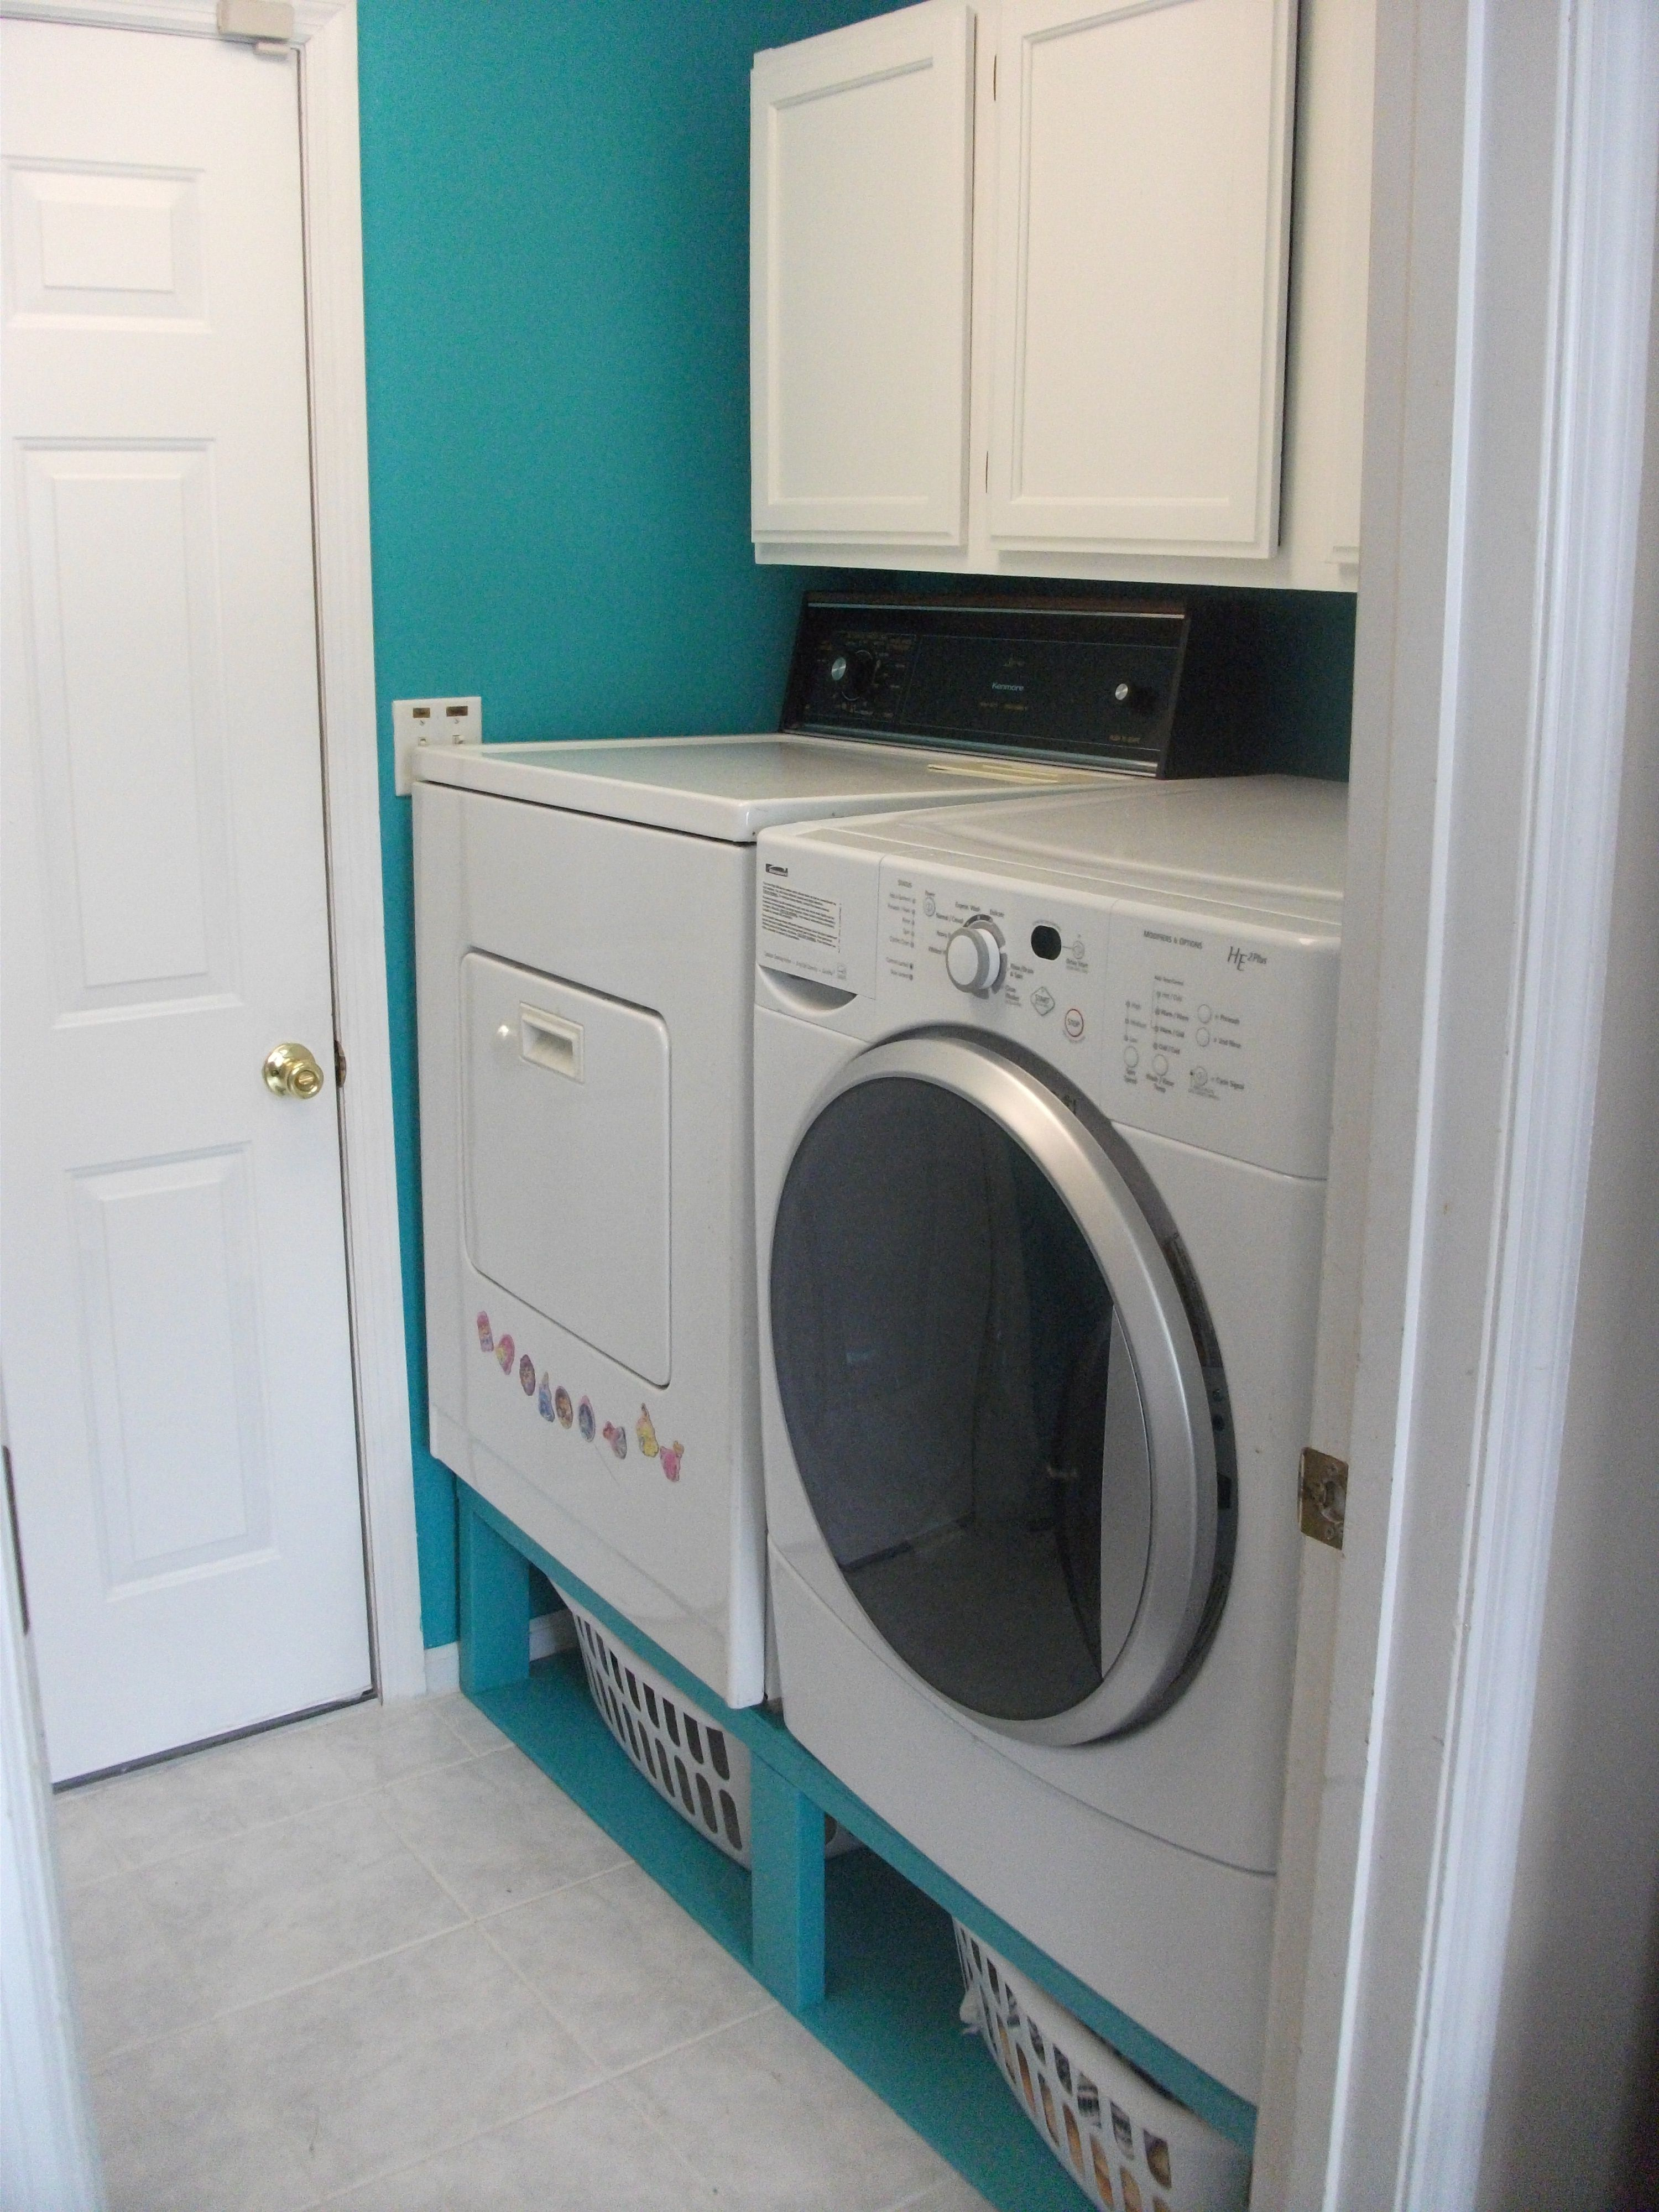 Pin By Nicole Marcel On Home Projects Laundry Storage Kids Shoe Storage Laundry